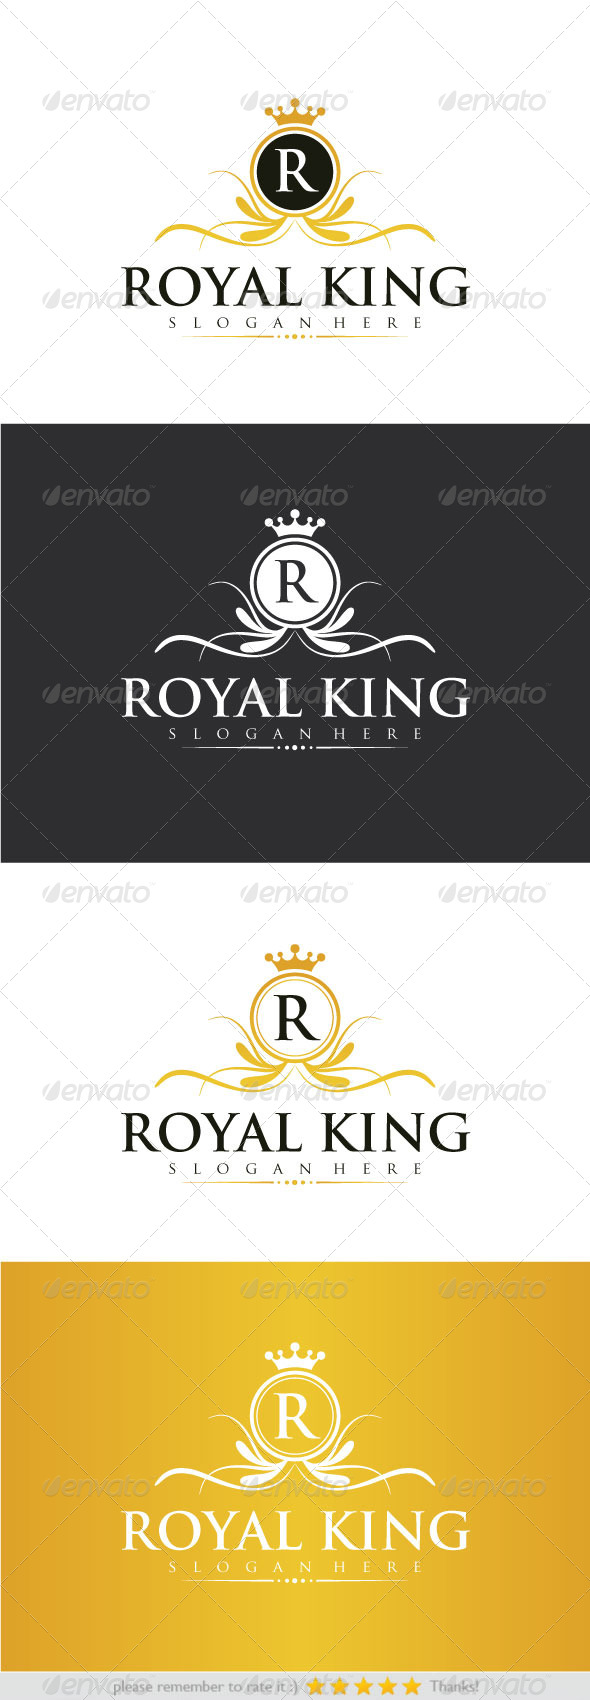 GraphicRiver Royal King 8325379